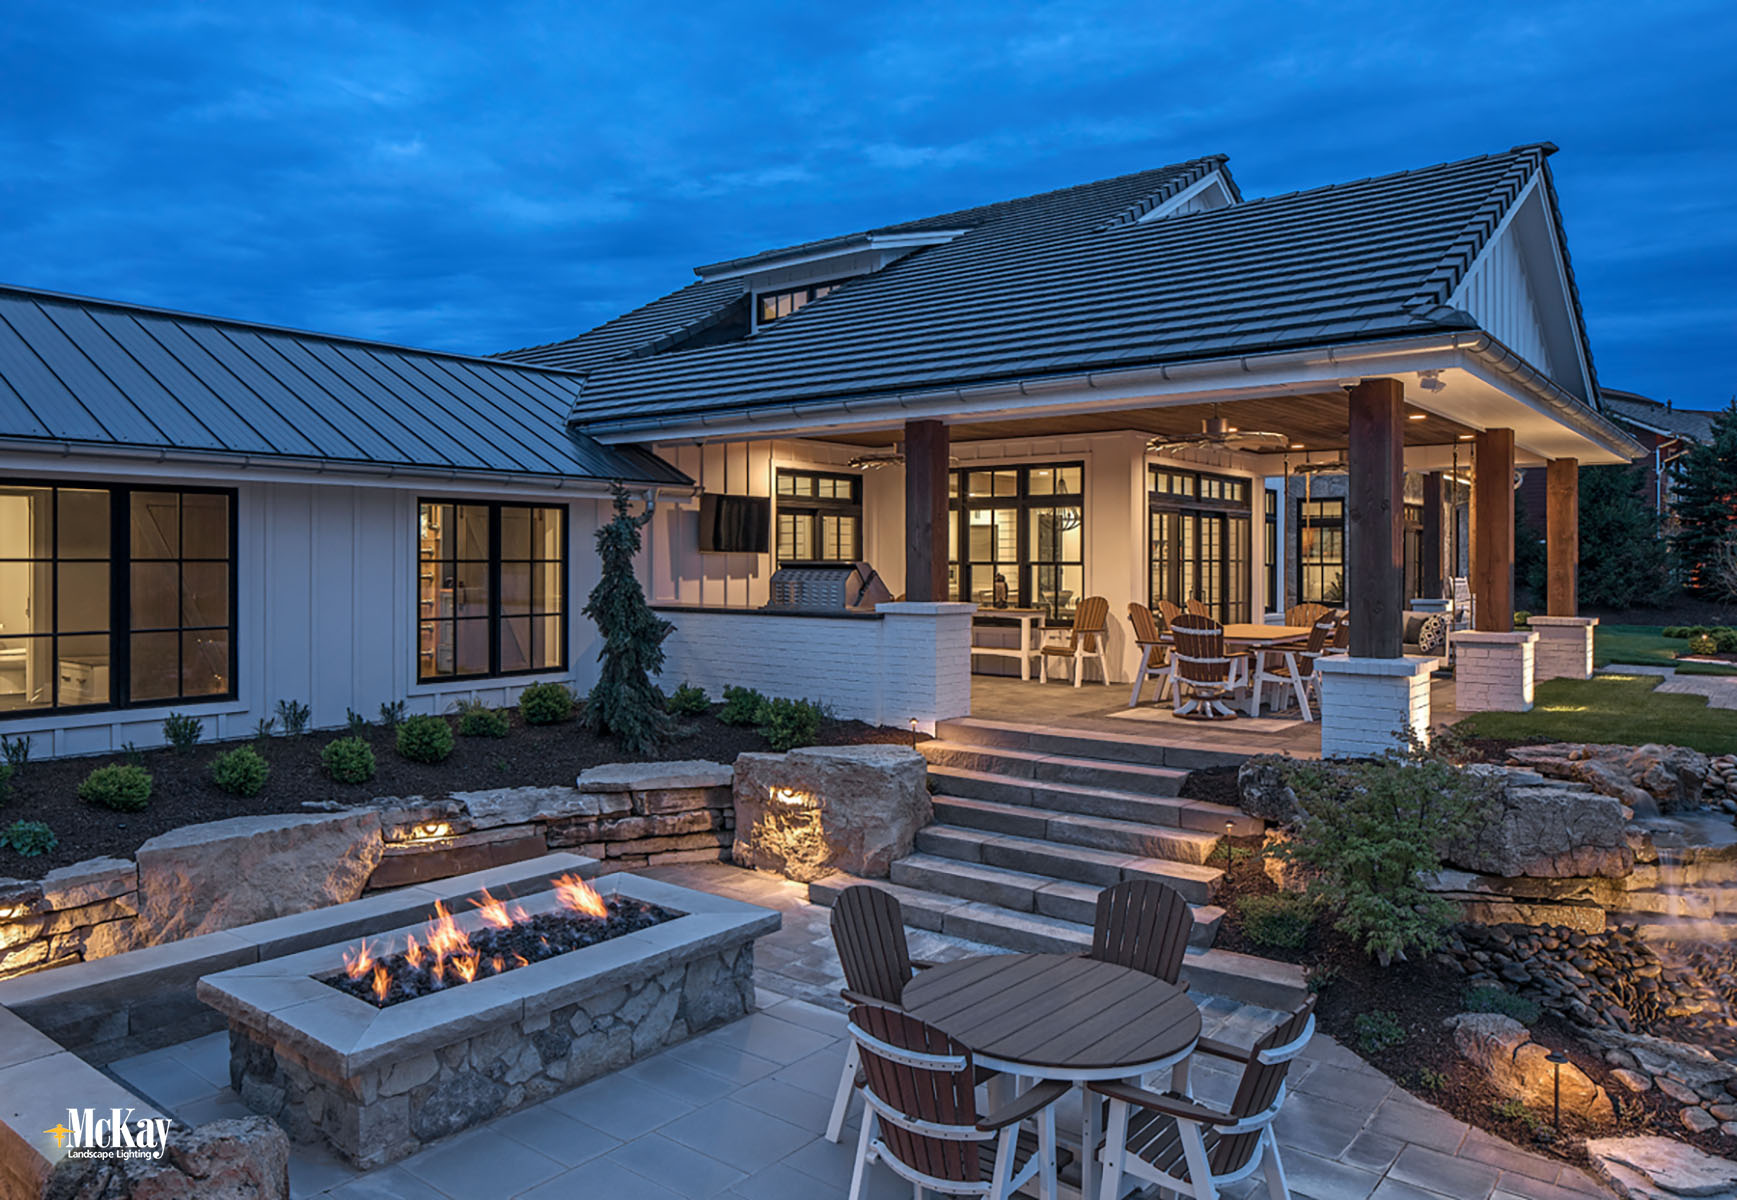 Lake House Outdoor Patio Lighting around Fire Pit Bluewater Lake Valley Nebraska McKay Landscape Lighting